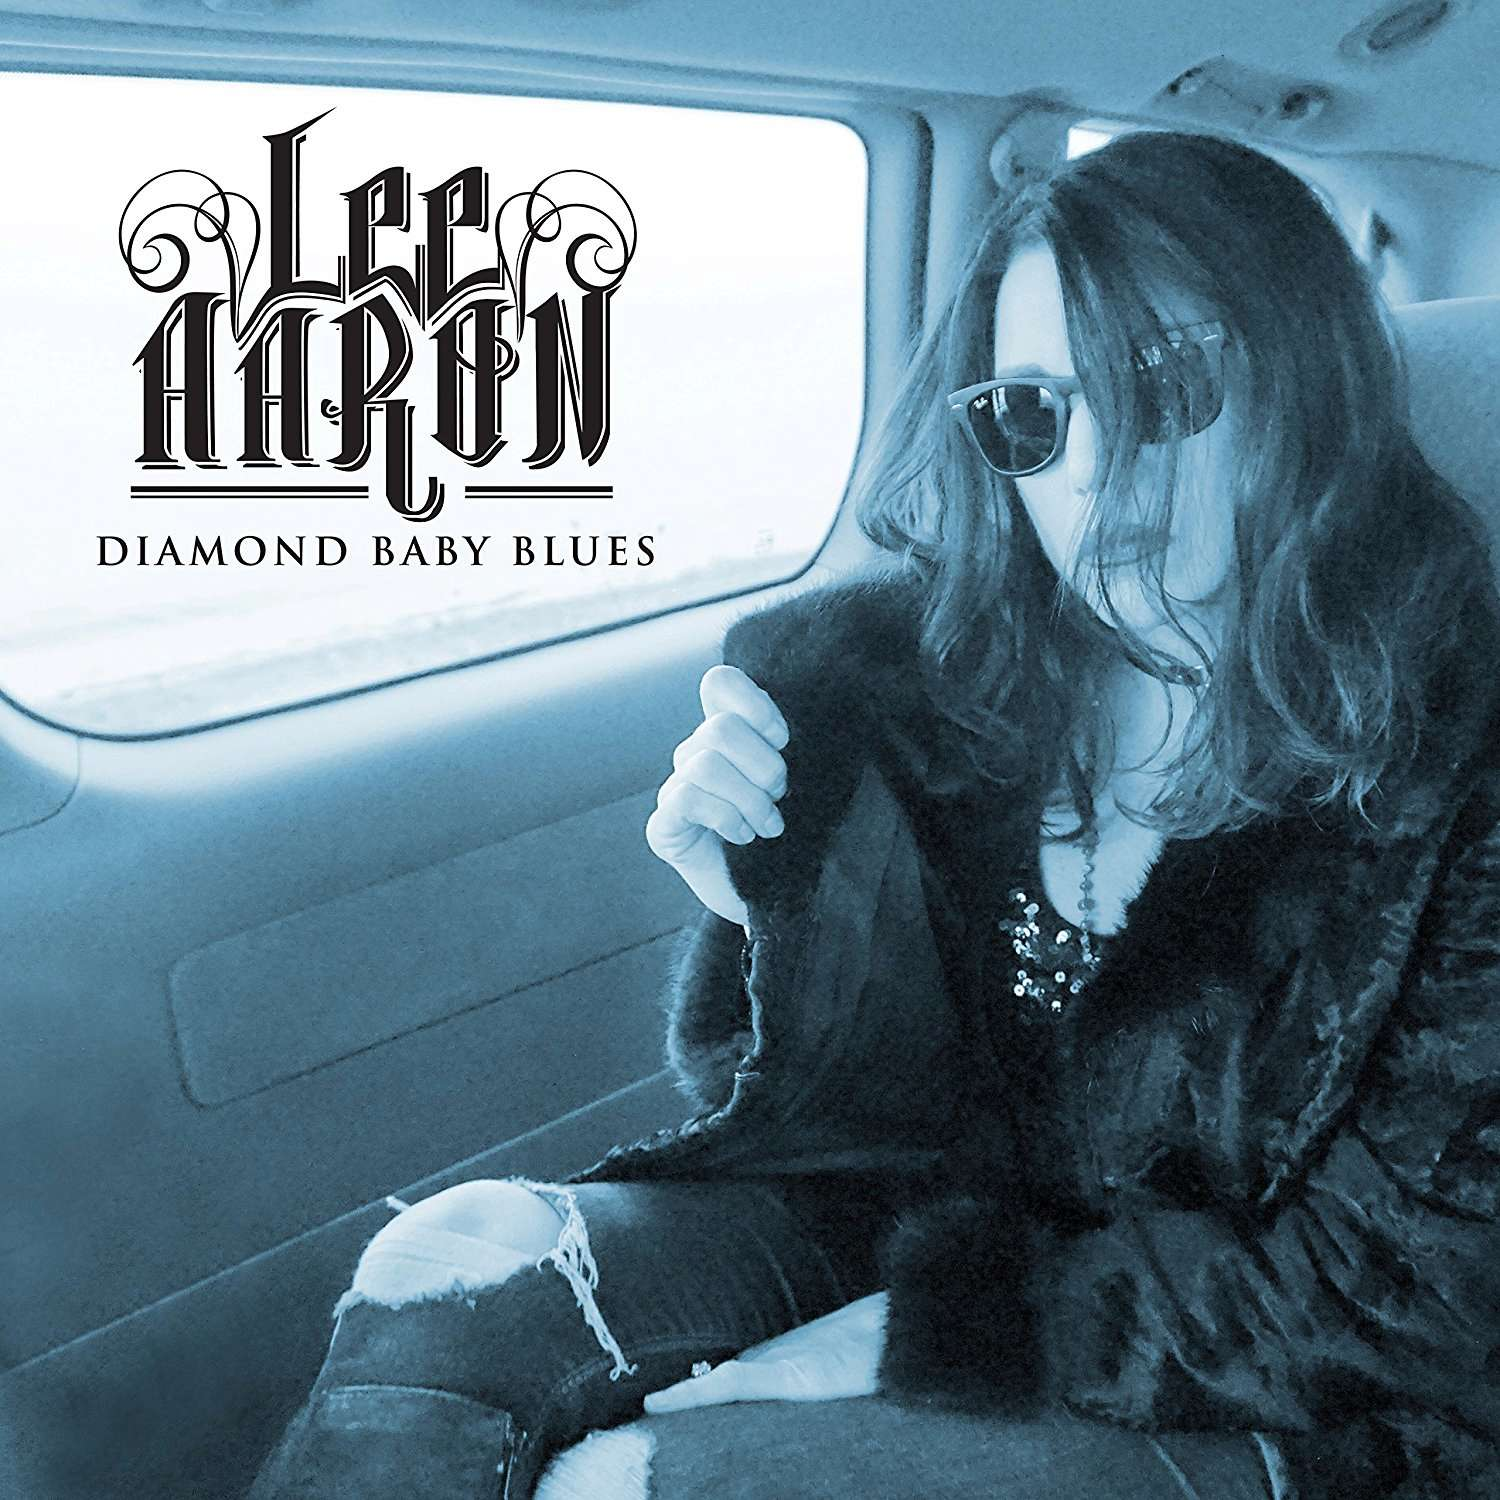 LEE AARON Diamond baby blues (2018) Hard-Rock CANADA A117z-10